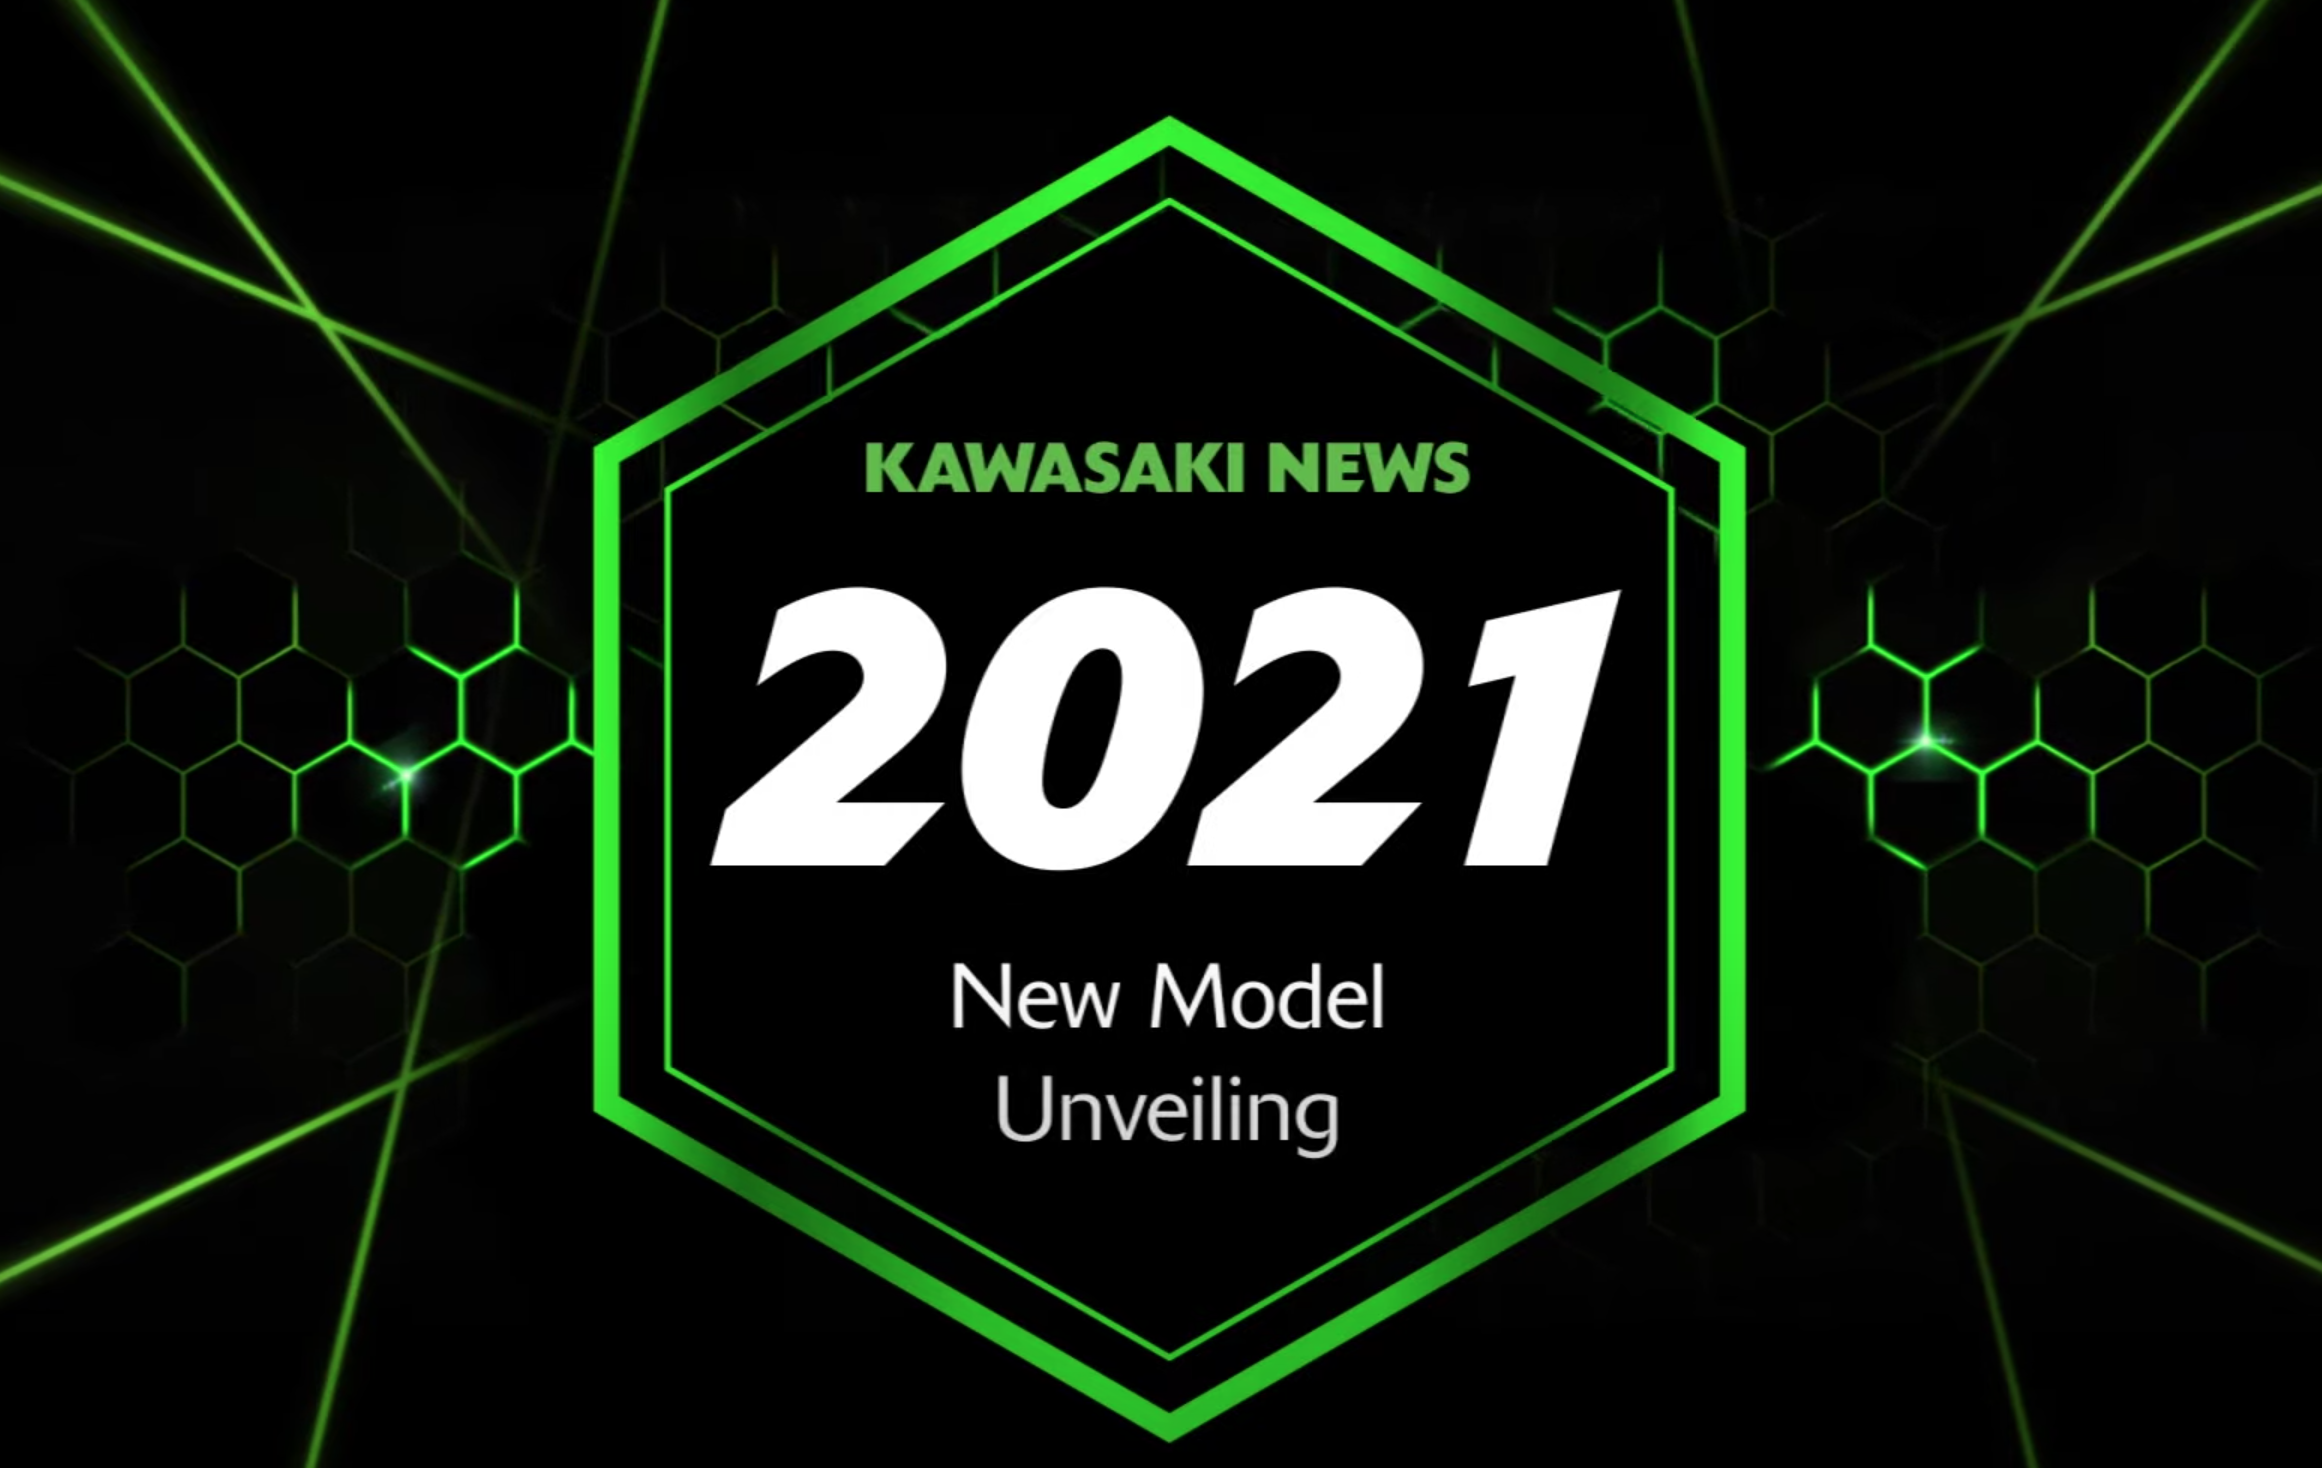 Kawasaki 2021 motorcycle reveal